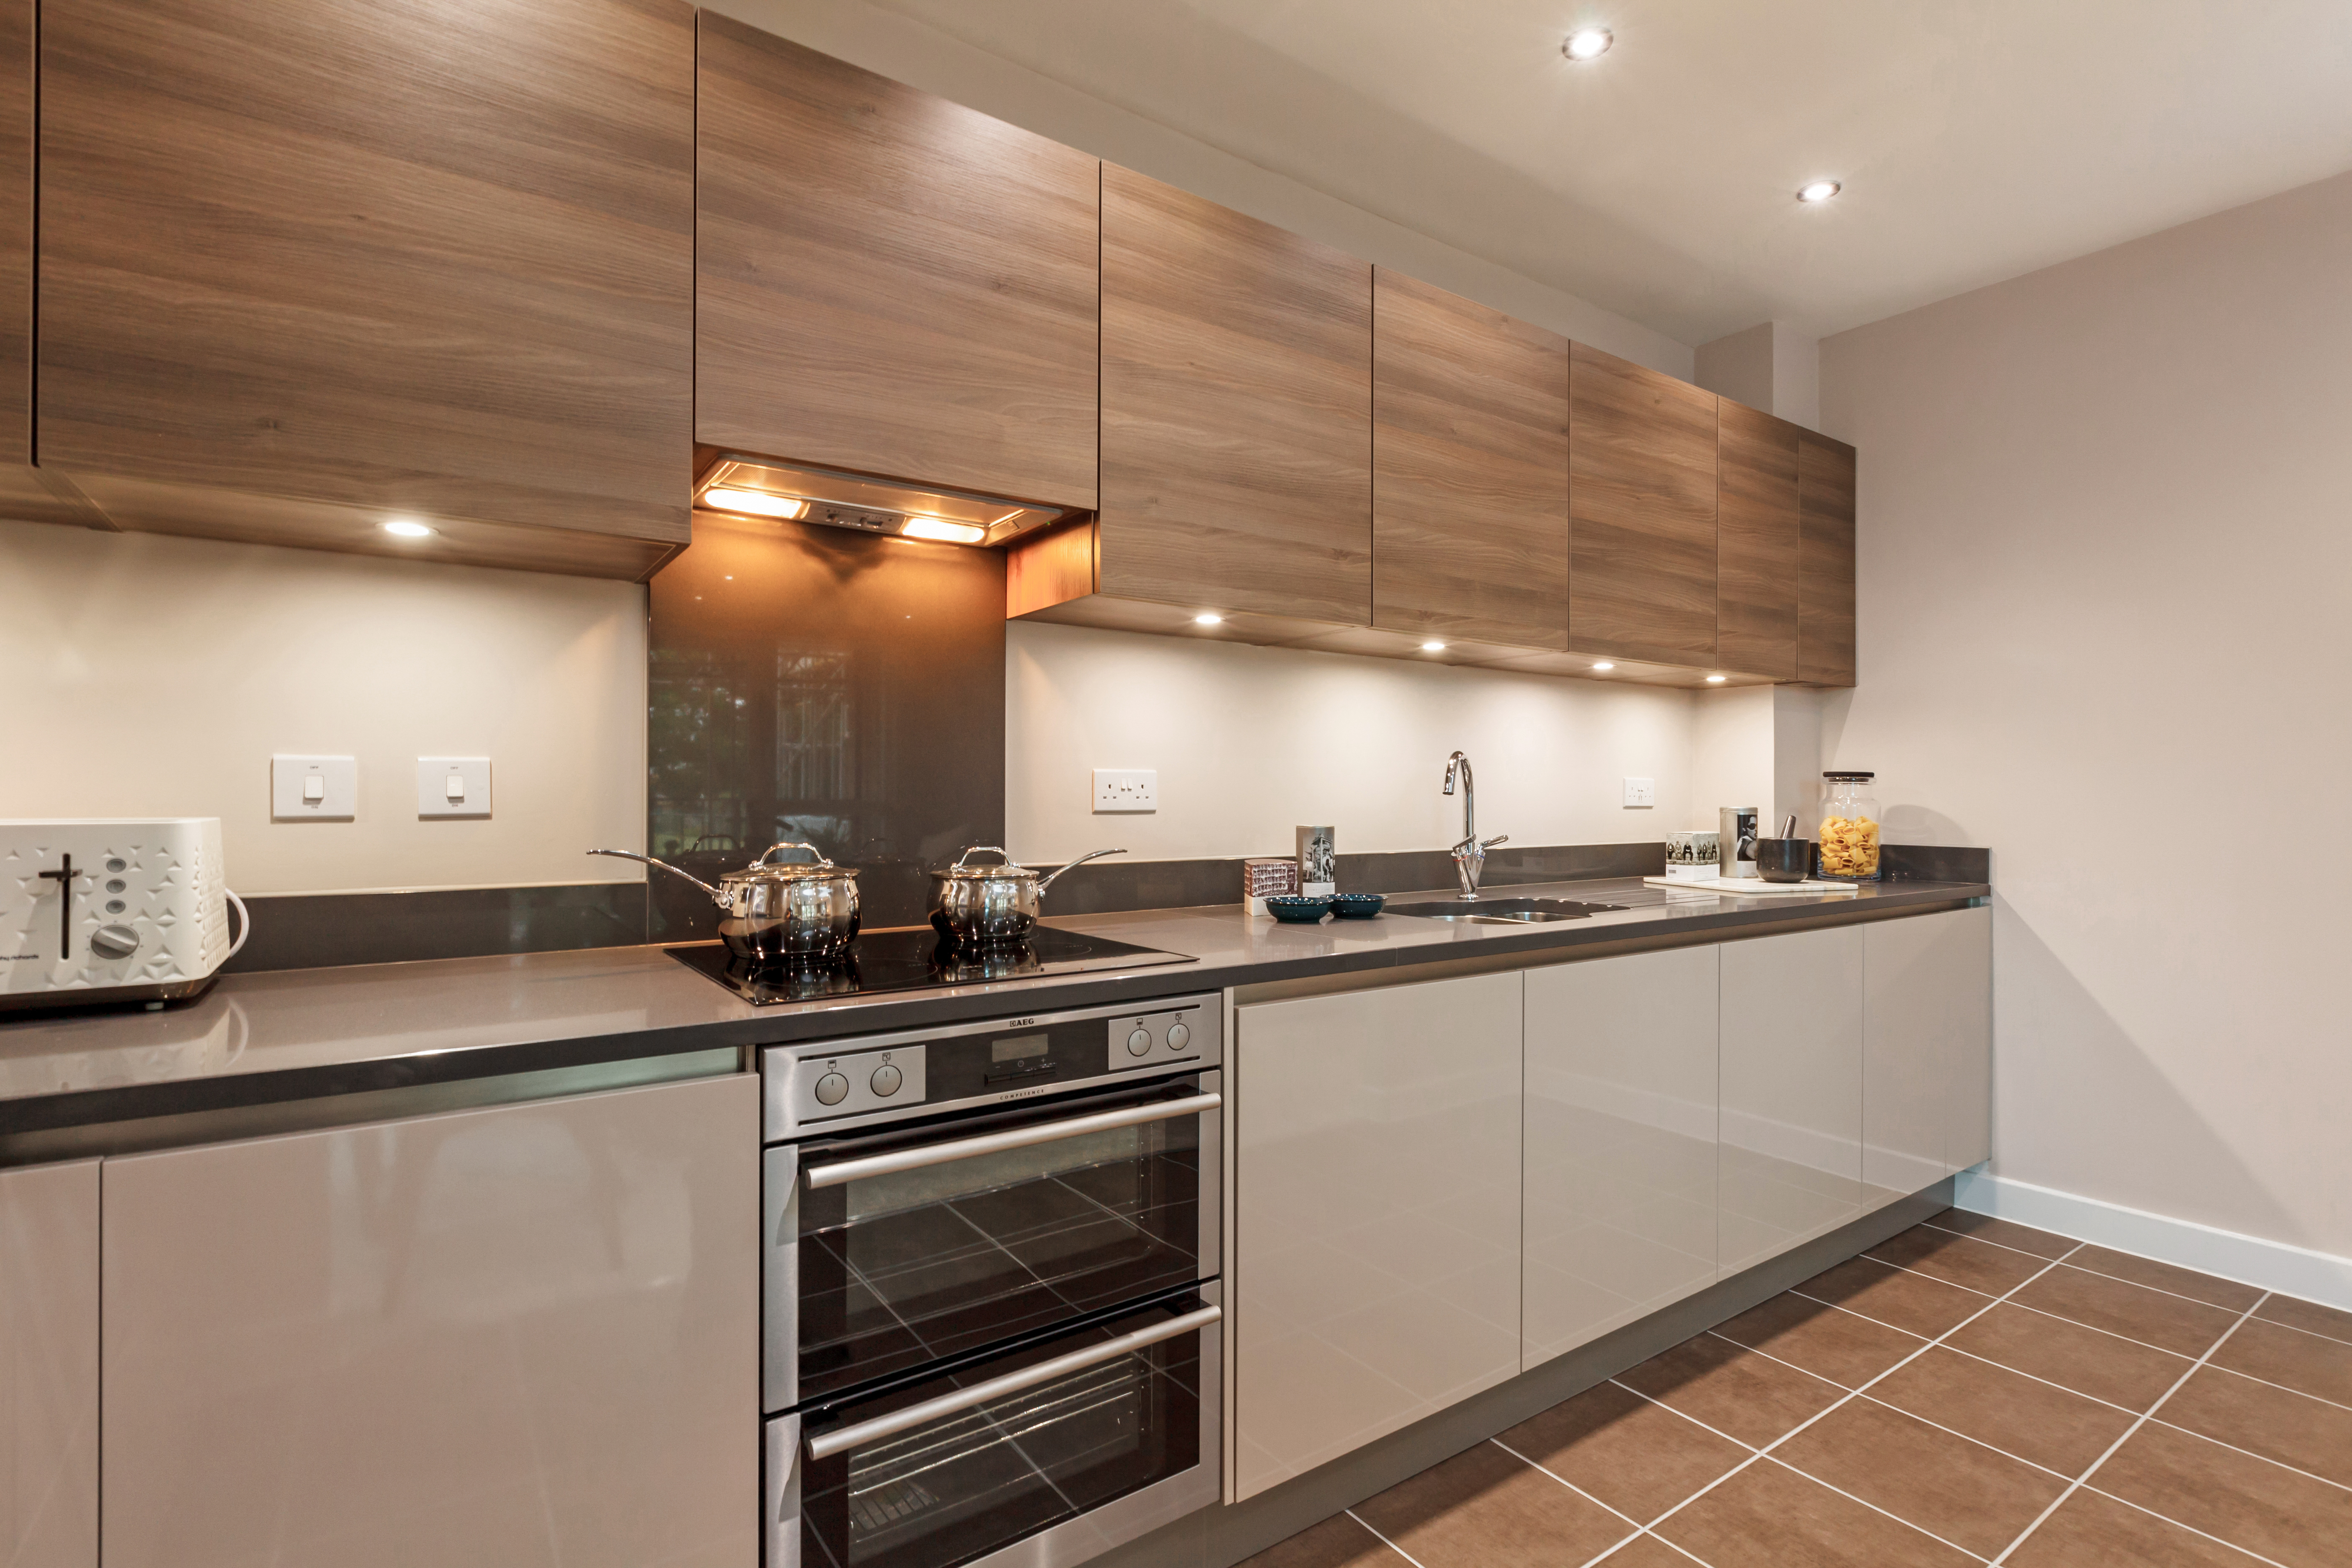 TW_NT_Millbrook Park_2 Bed Apartment_Kitchen_3